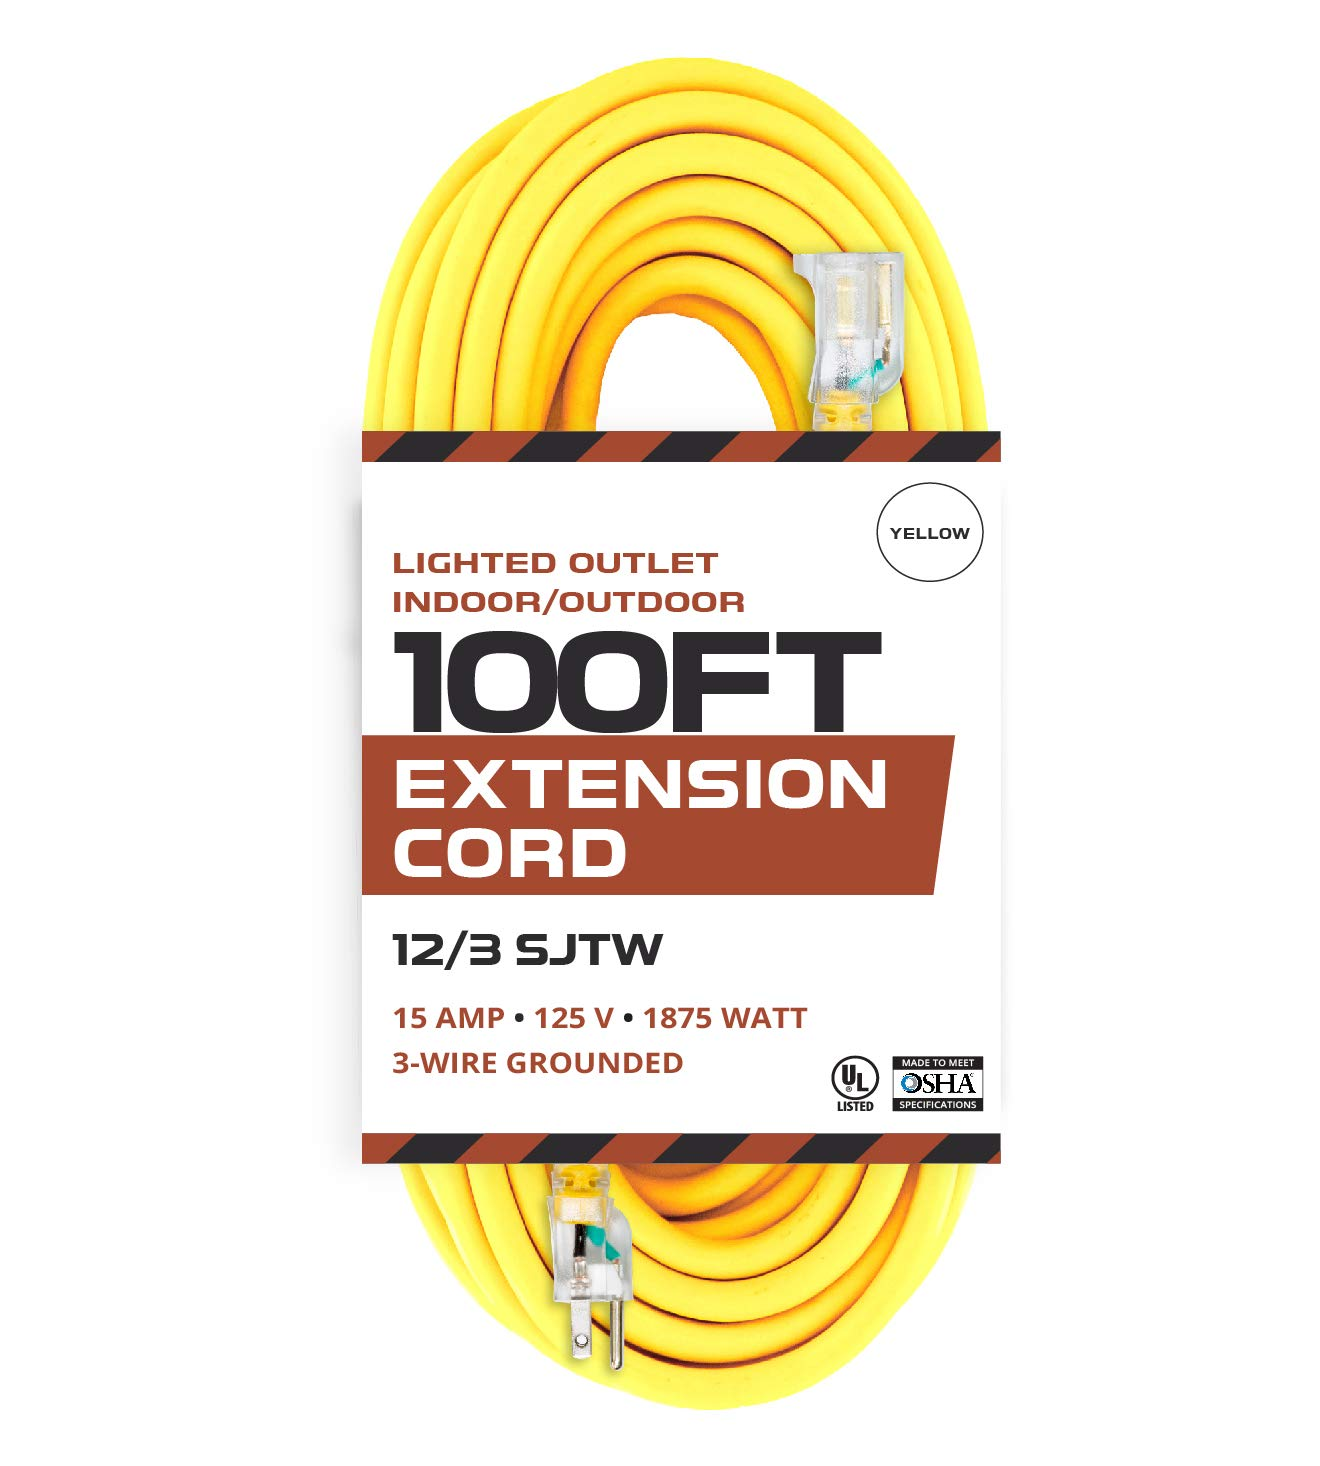 outdoor extension cord 12 3 sjtw heavy duty yellow 3 prongoutdoor extension cord 12 3 sjtw heavy duty yellow 3 prong extension cable great for garden and major appliances (100 foot yellow) amazon com